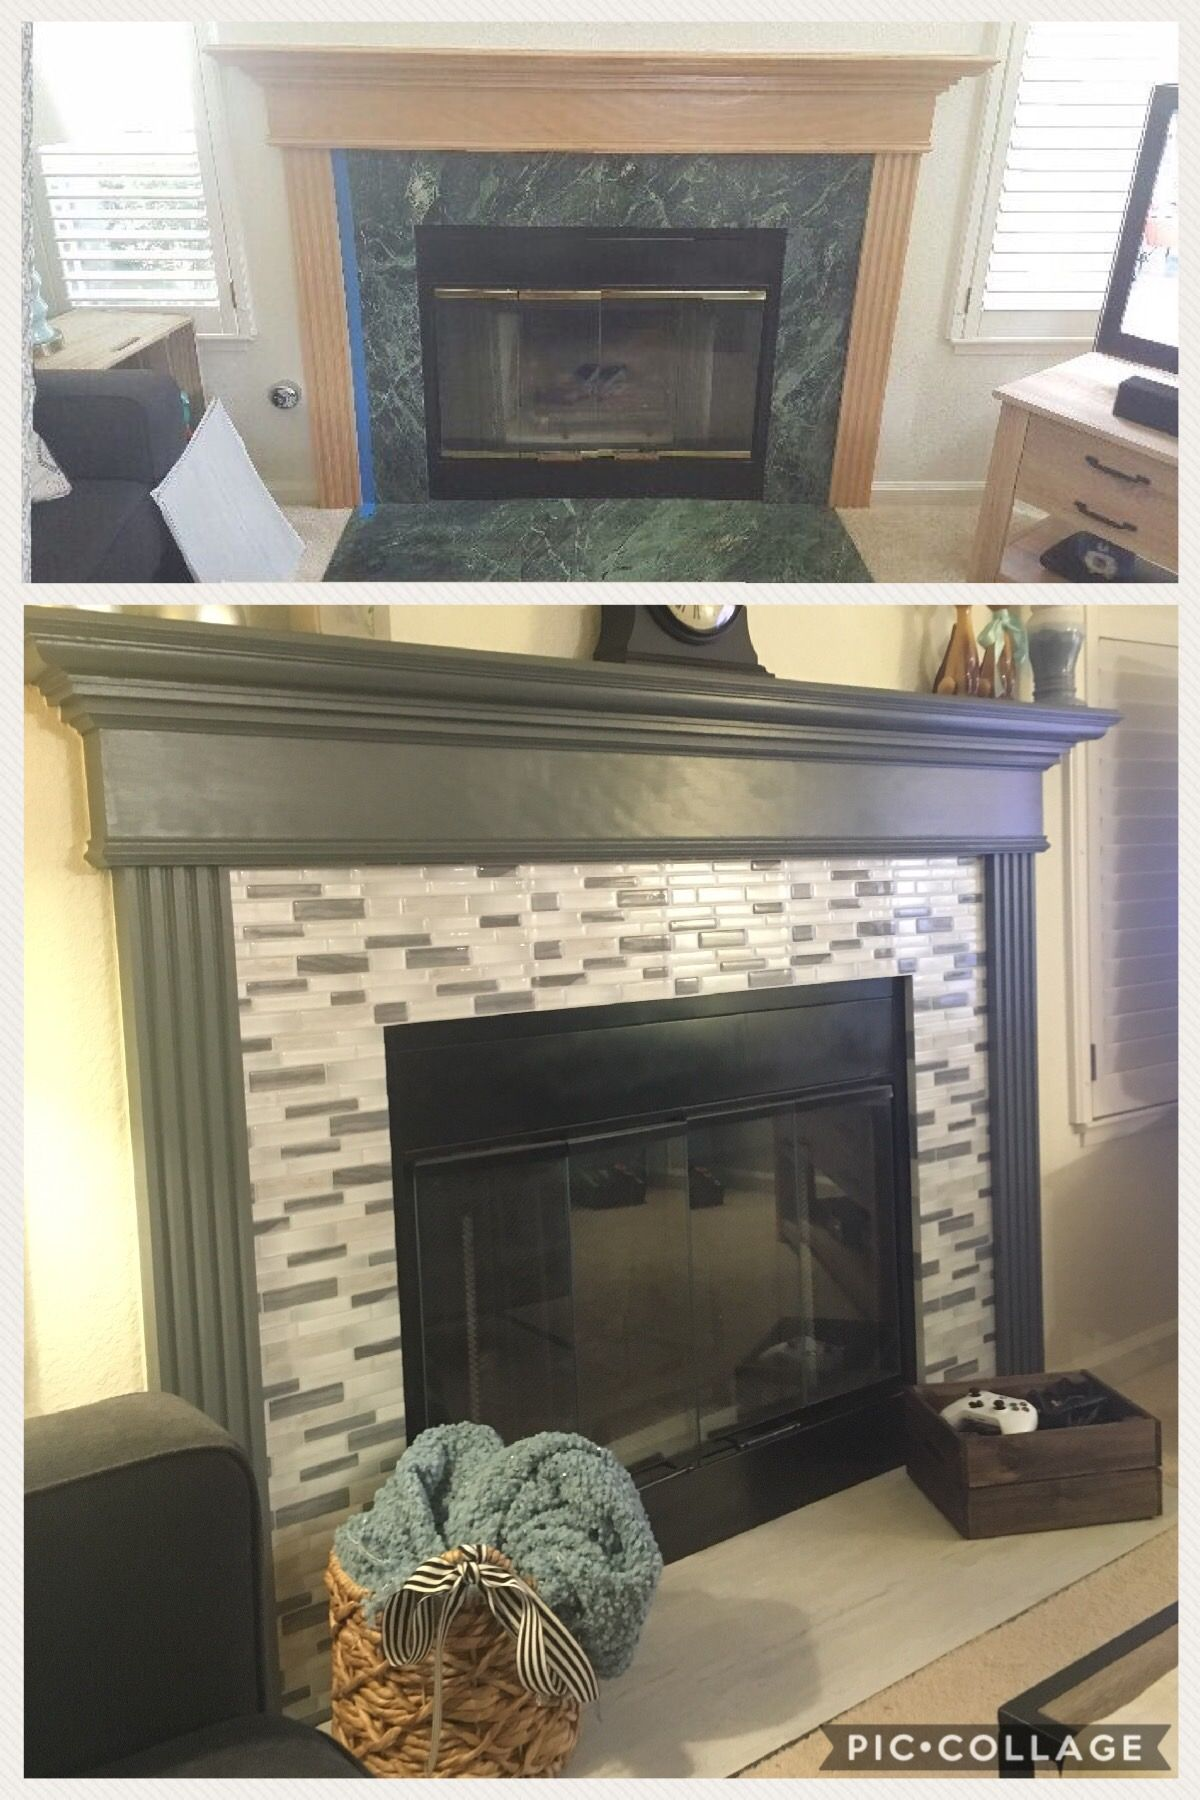 Diy Fireplace Makeover With Peel And Stick Tiles Diy Fireplace Makeover Fireplace Makeover Diy Fireplace